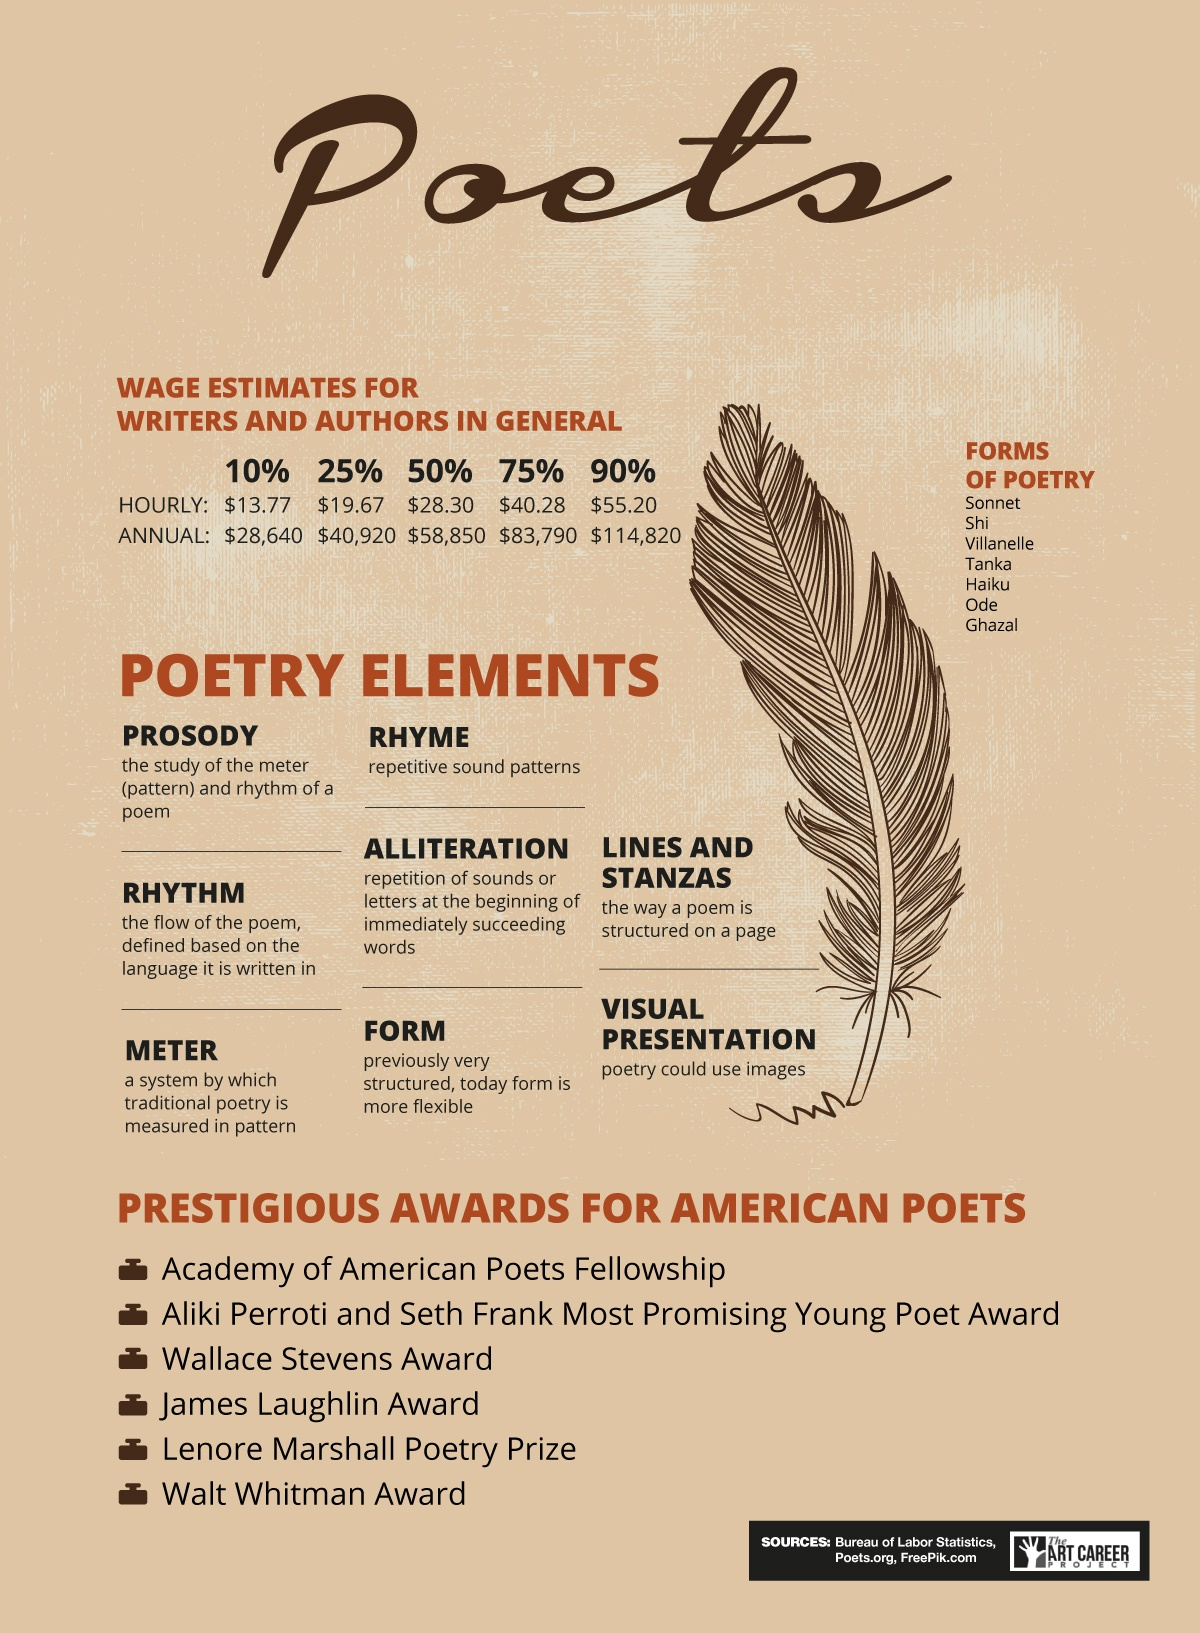 literature essays on poems Political poems use language in a way distinct from rhetoric  political poems  have a tendency to turn into lyricized essays, or editorials,.